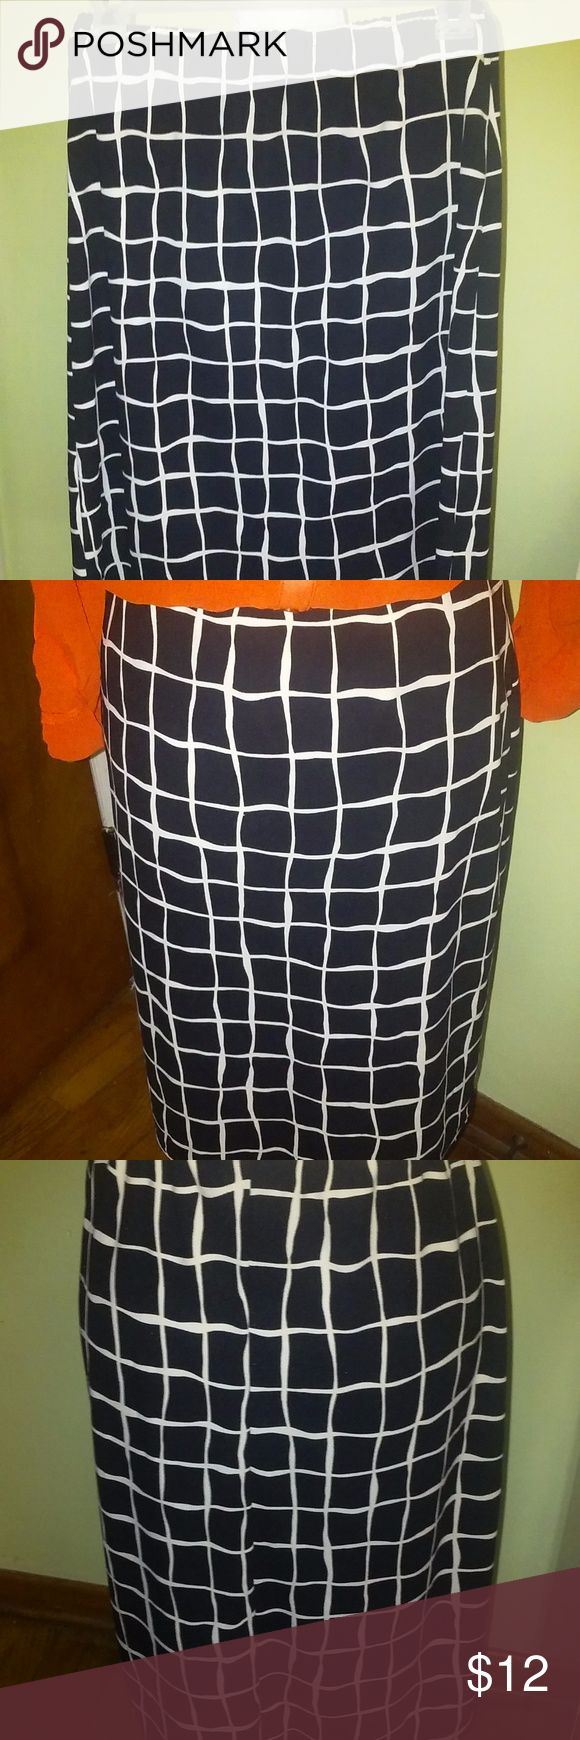 """G.A. S. CO. Dresses Black and White Skirt Size M Pretty black and white printed polyester pull on skirt by G.A.S. Co. Size Medium and in excellent condition.  Shown with an orange blouse i also have for sale.  Made of 100% polyester and unlined.  Falls just below the knee according to height.  I'm 5'7"""" and it comes past my knees. Waist - 24""""  It does allow room for stretch- elastic waistband Hips - 34"""" Length - 22 1/2""""  Thanks for looking and Happy Poshing! G.A.S. CO. Skirts Midi"""